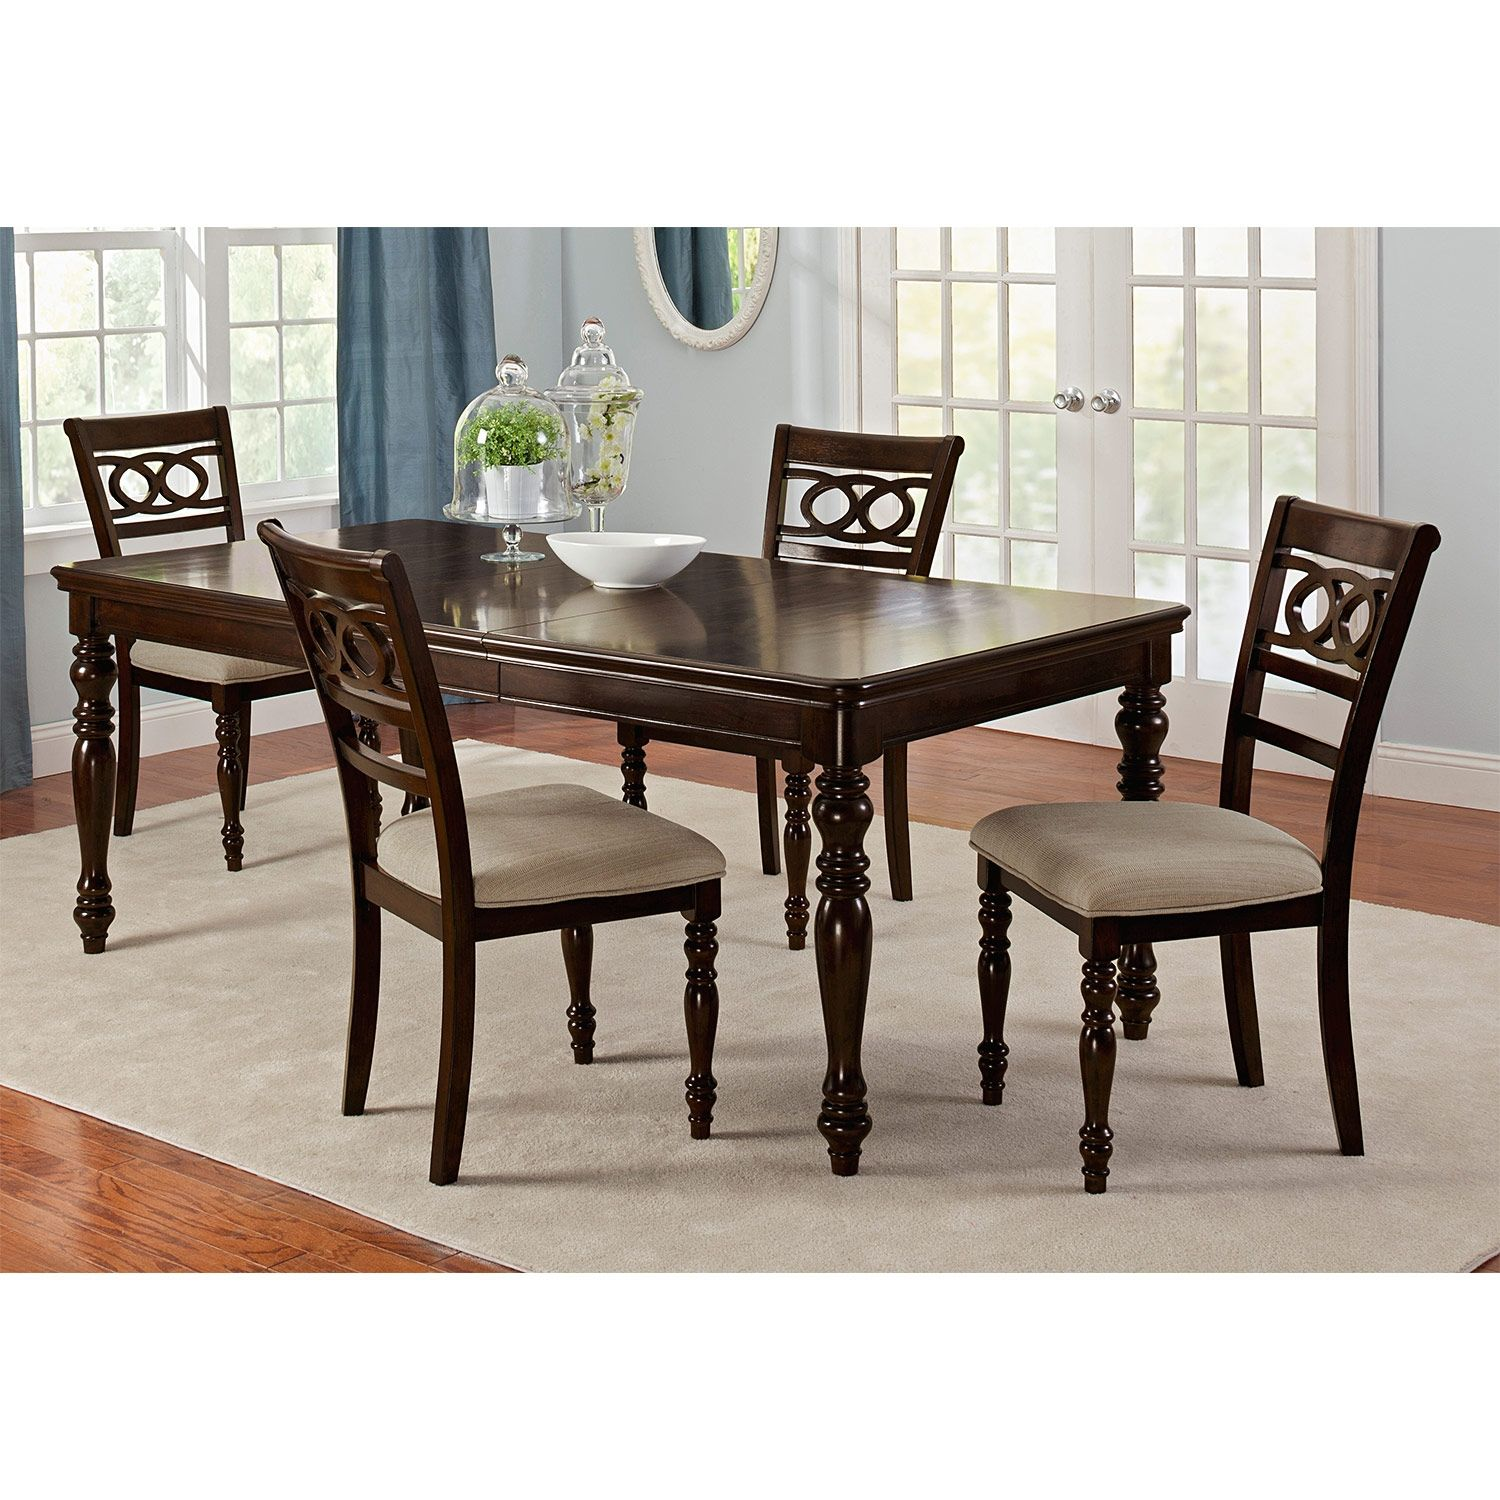 Hayden ridge dining room 5 pc dinette value city furniture value city